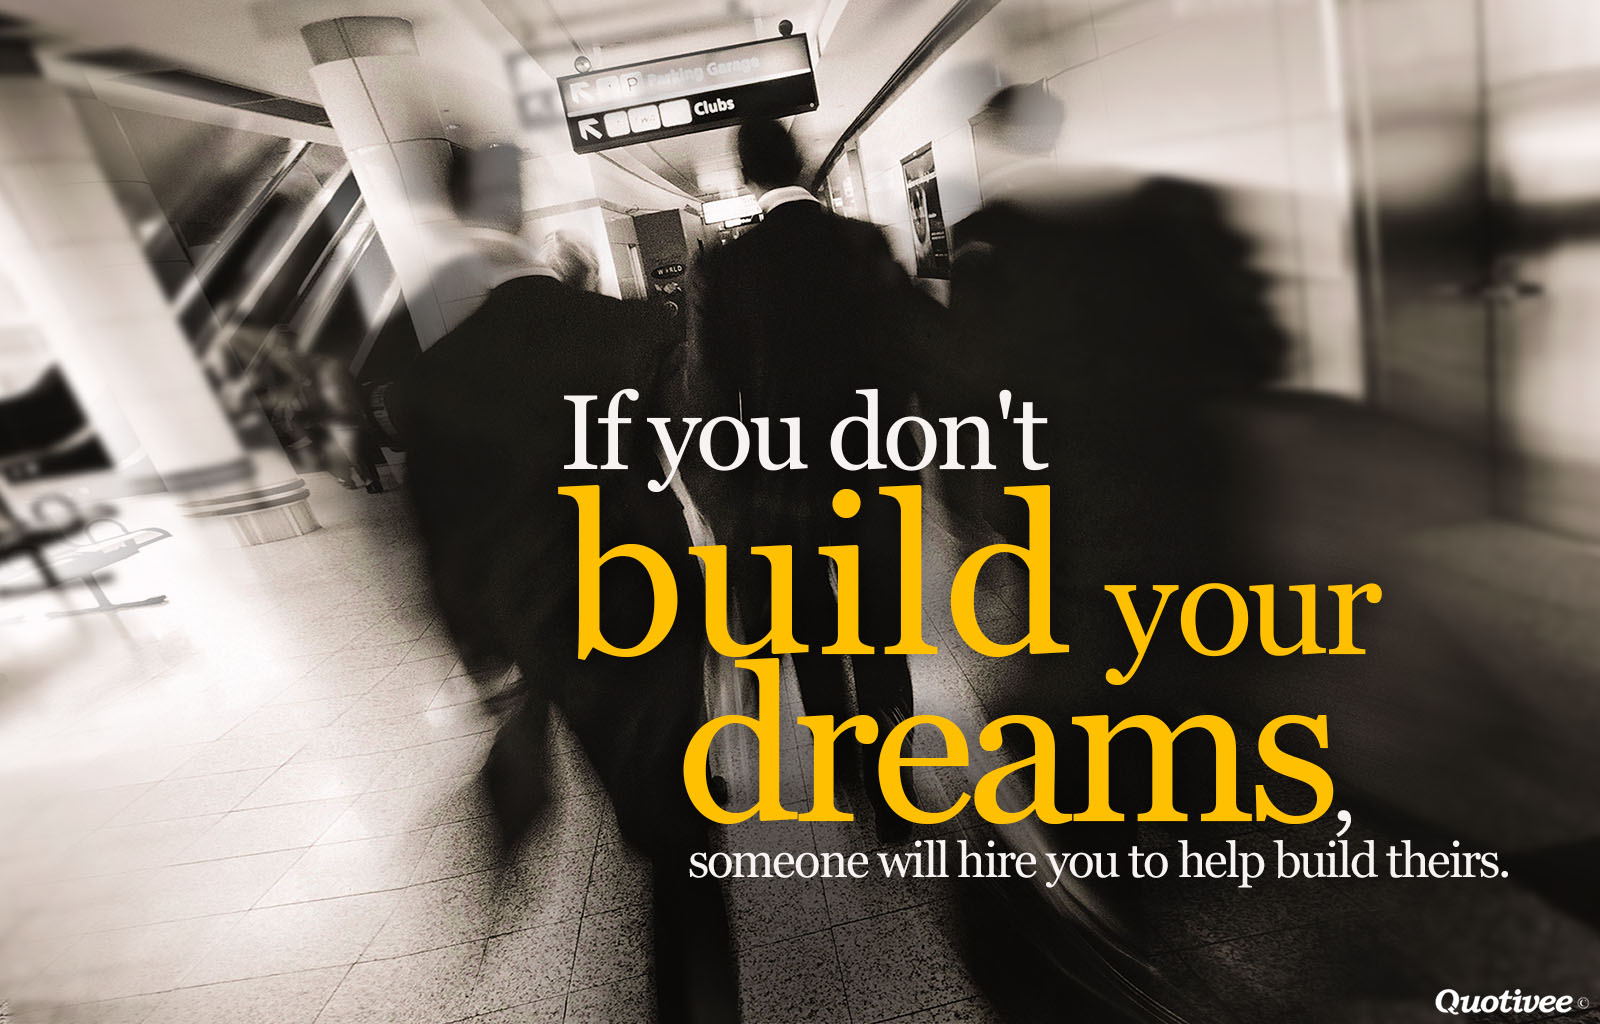 Harvey Specter Quotes Wallpaper Build Your Own Dreams Inspirational Quotes Quotivee